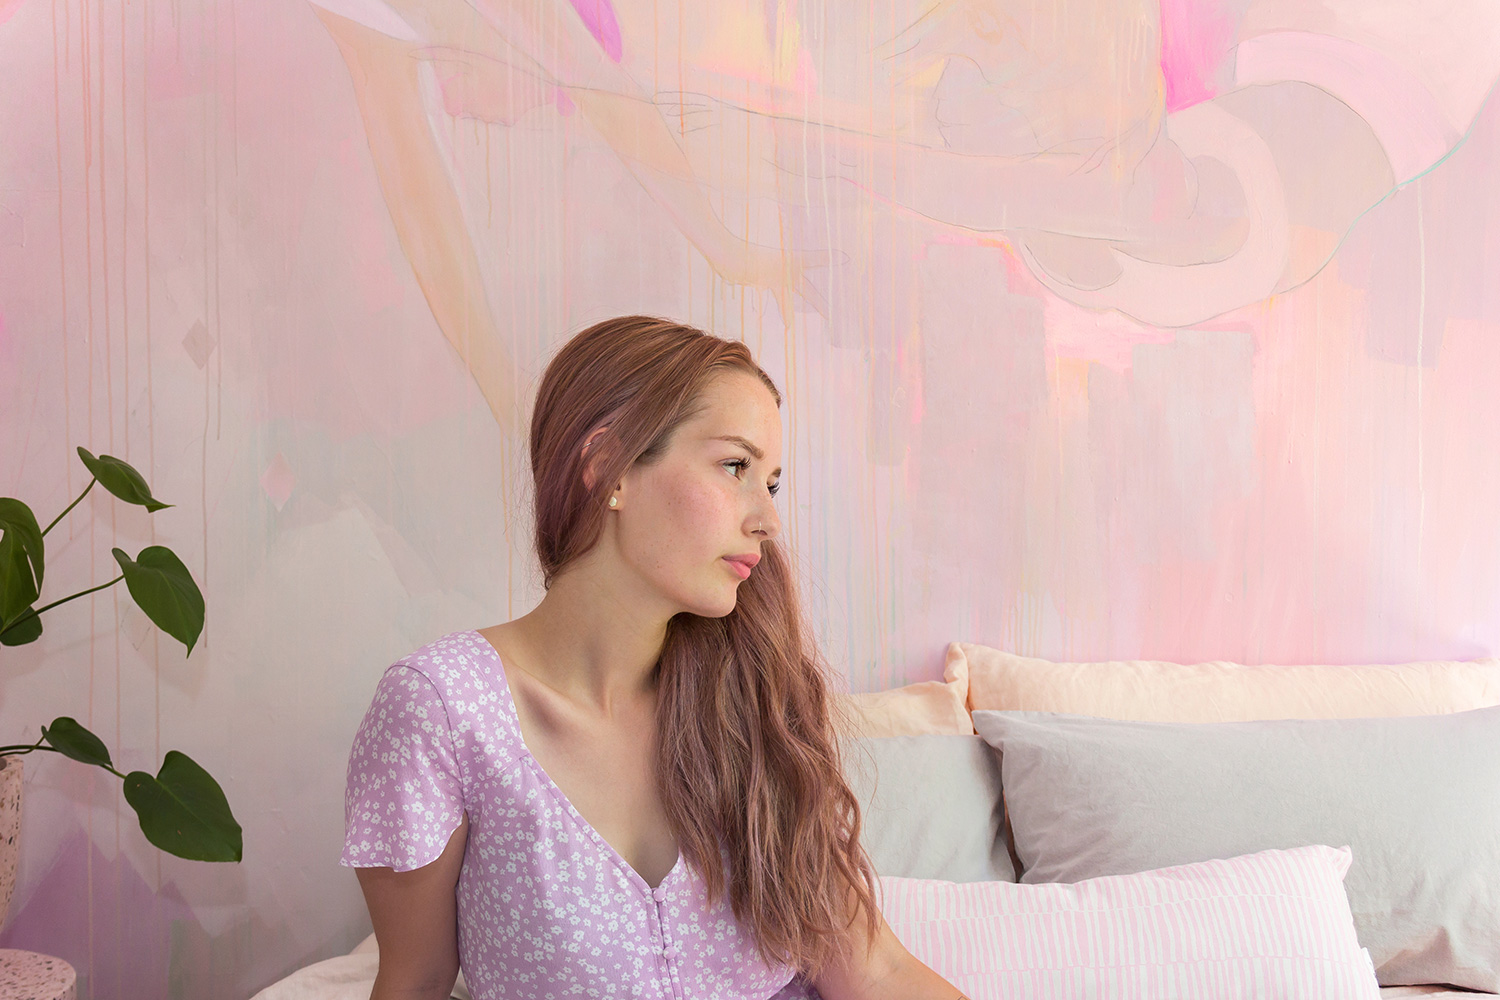 Gentle portrait of young model, the colors of her pastel hair and purple jumpsuit blend in with the soft colors of the abstract mural behind her.